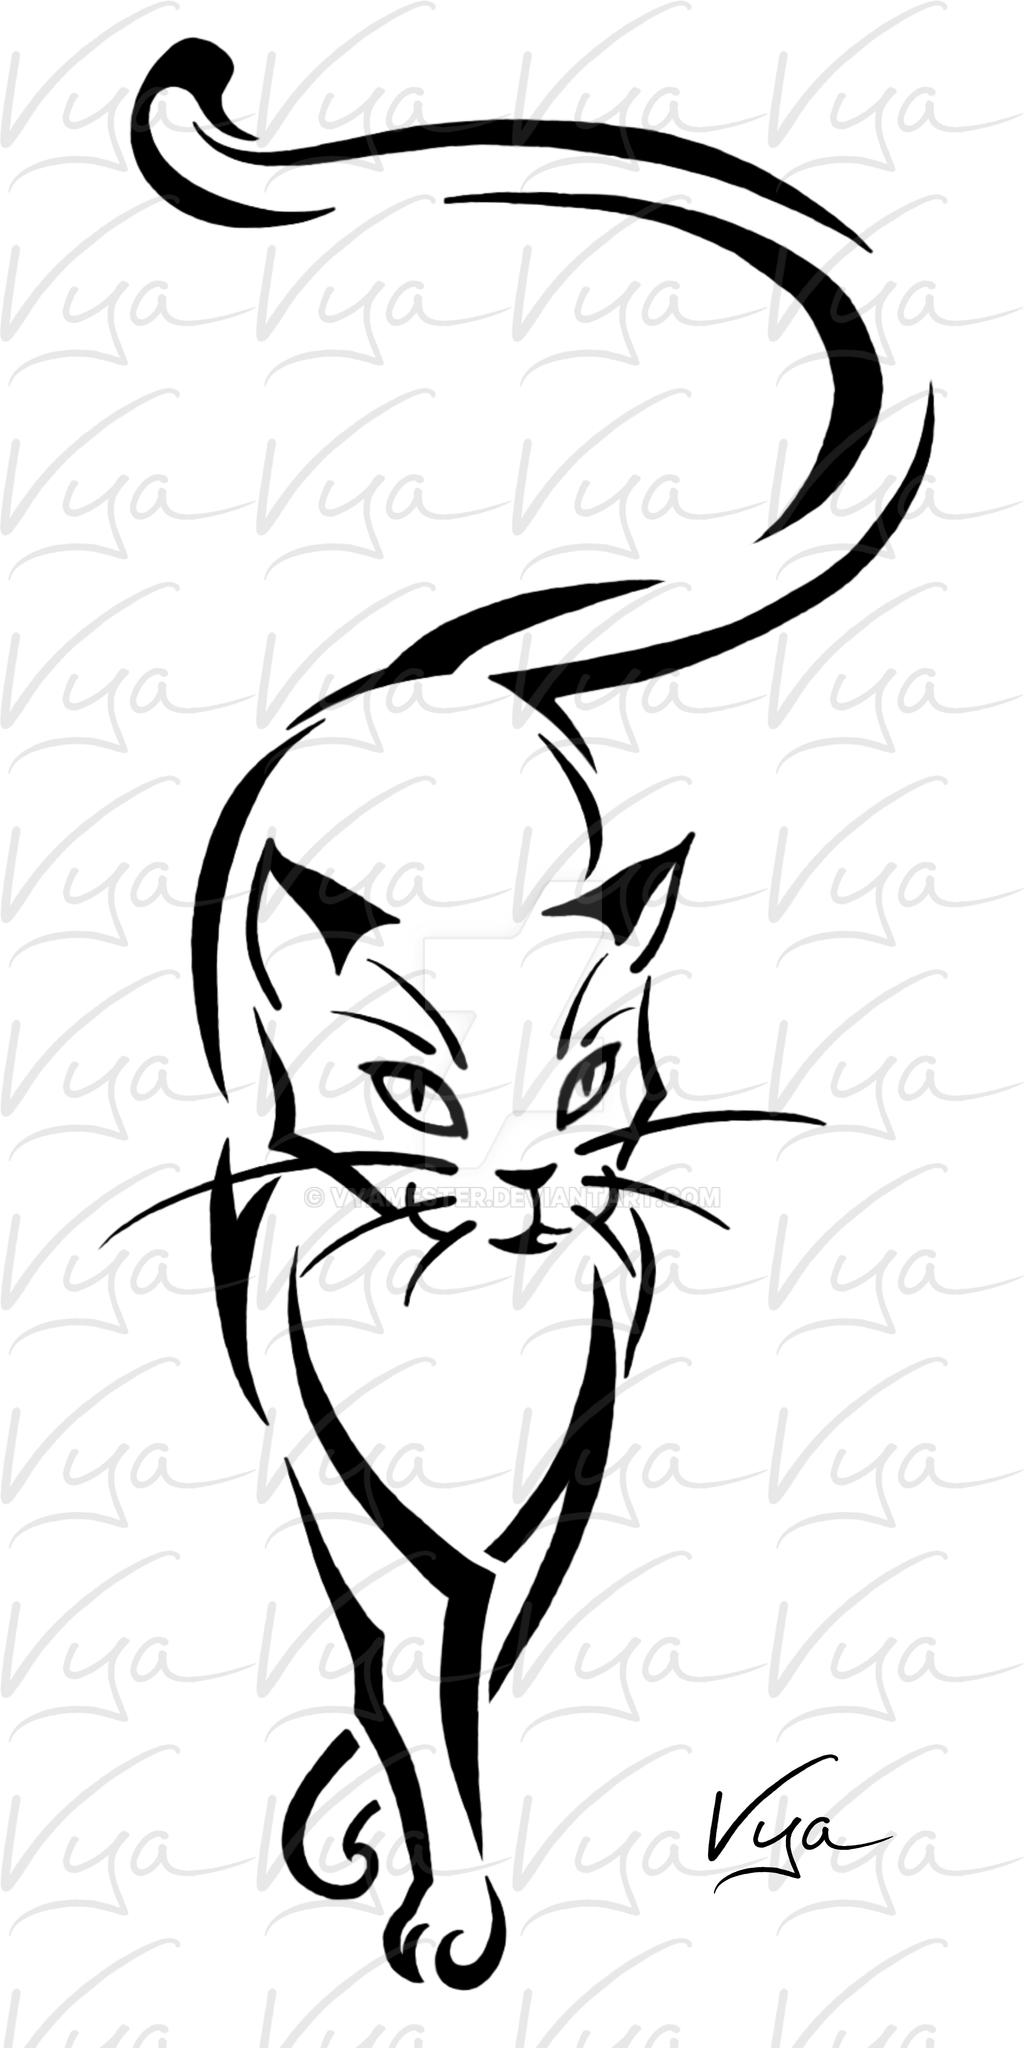 Line Drawing Meaning : Cat tattoo by vyamester on deviantart